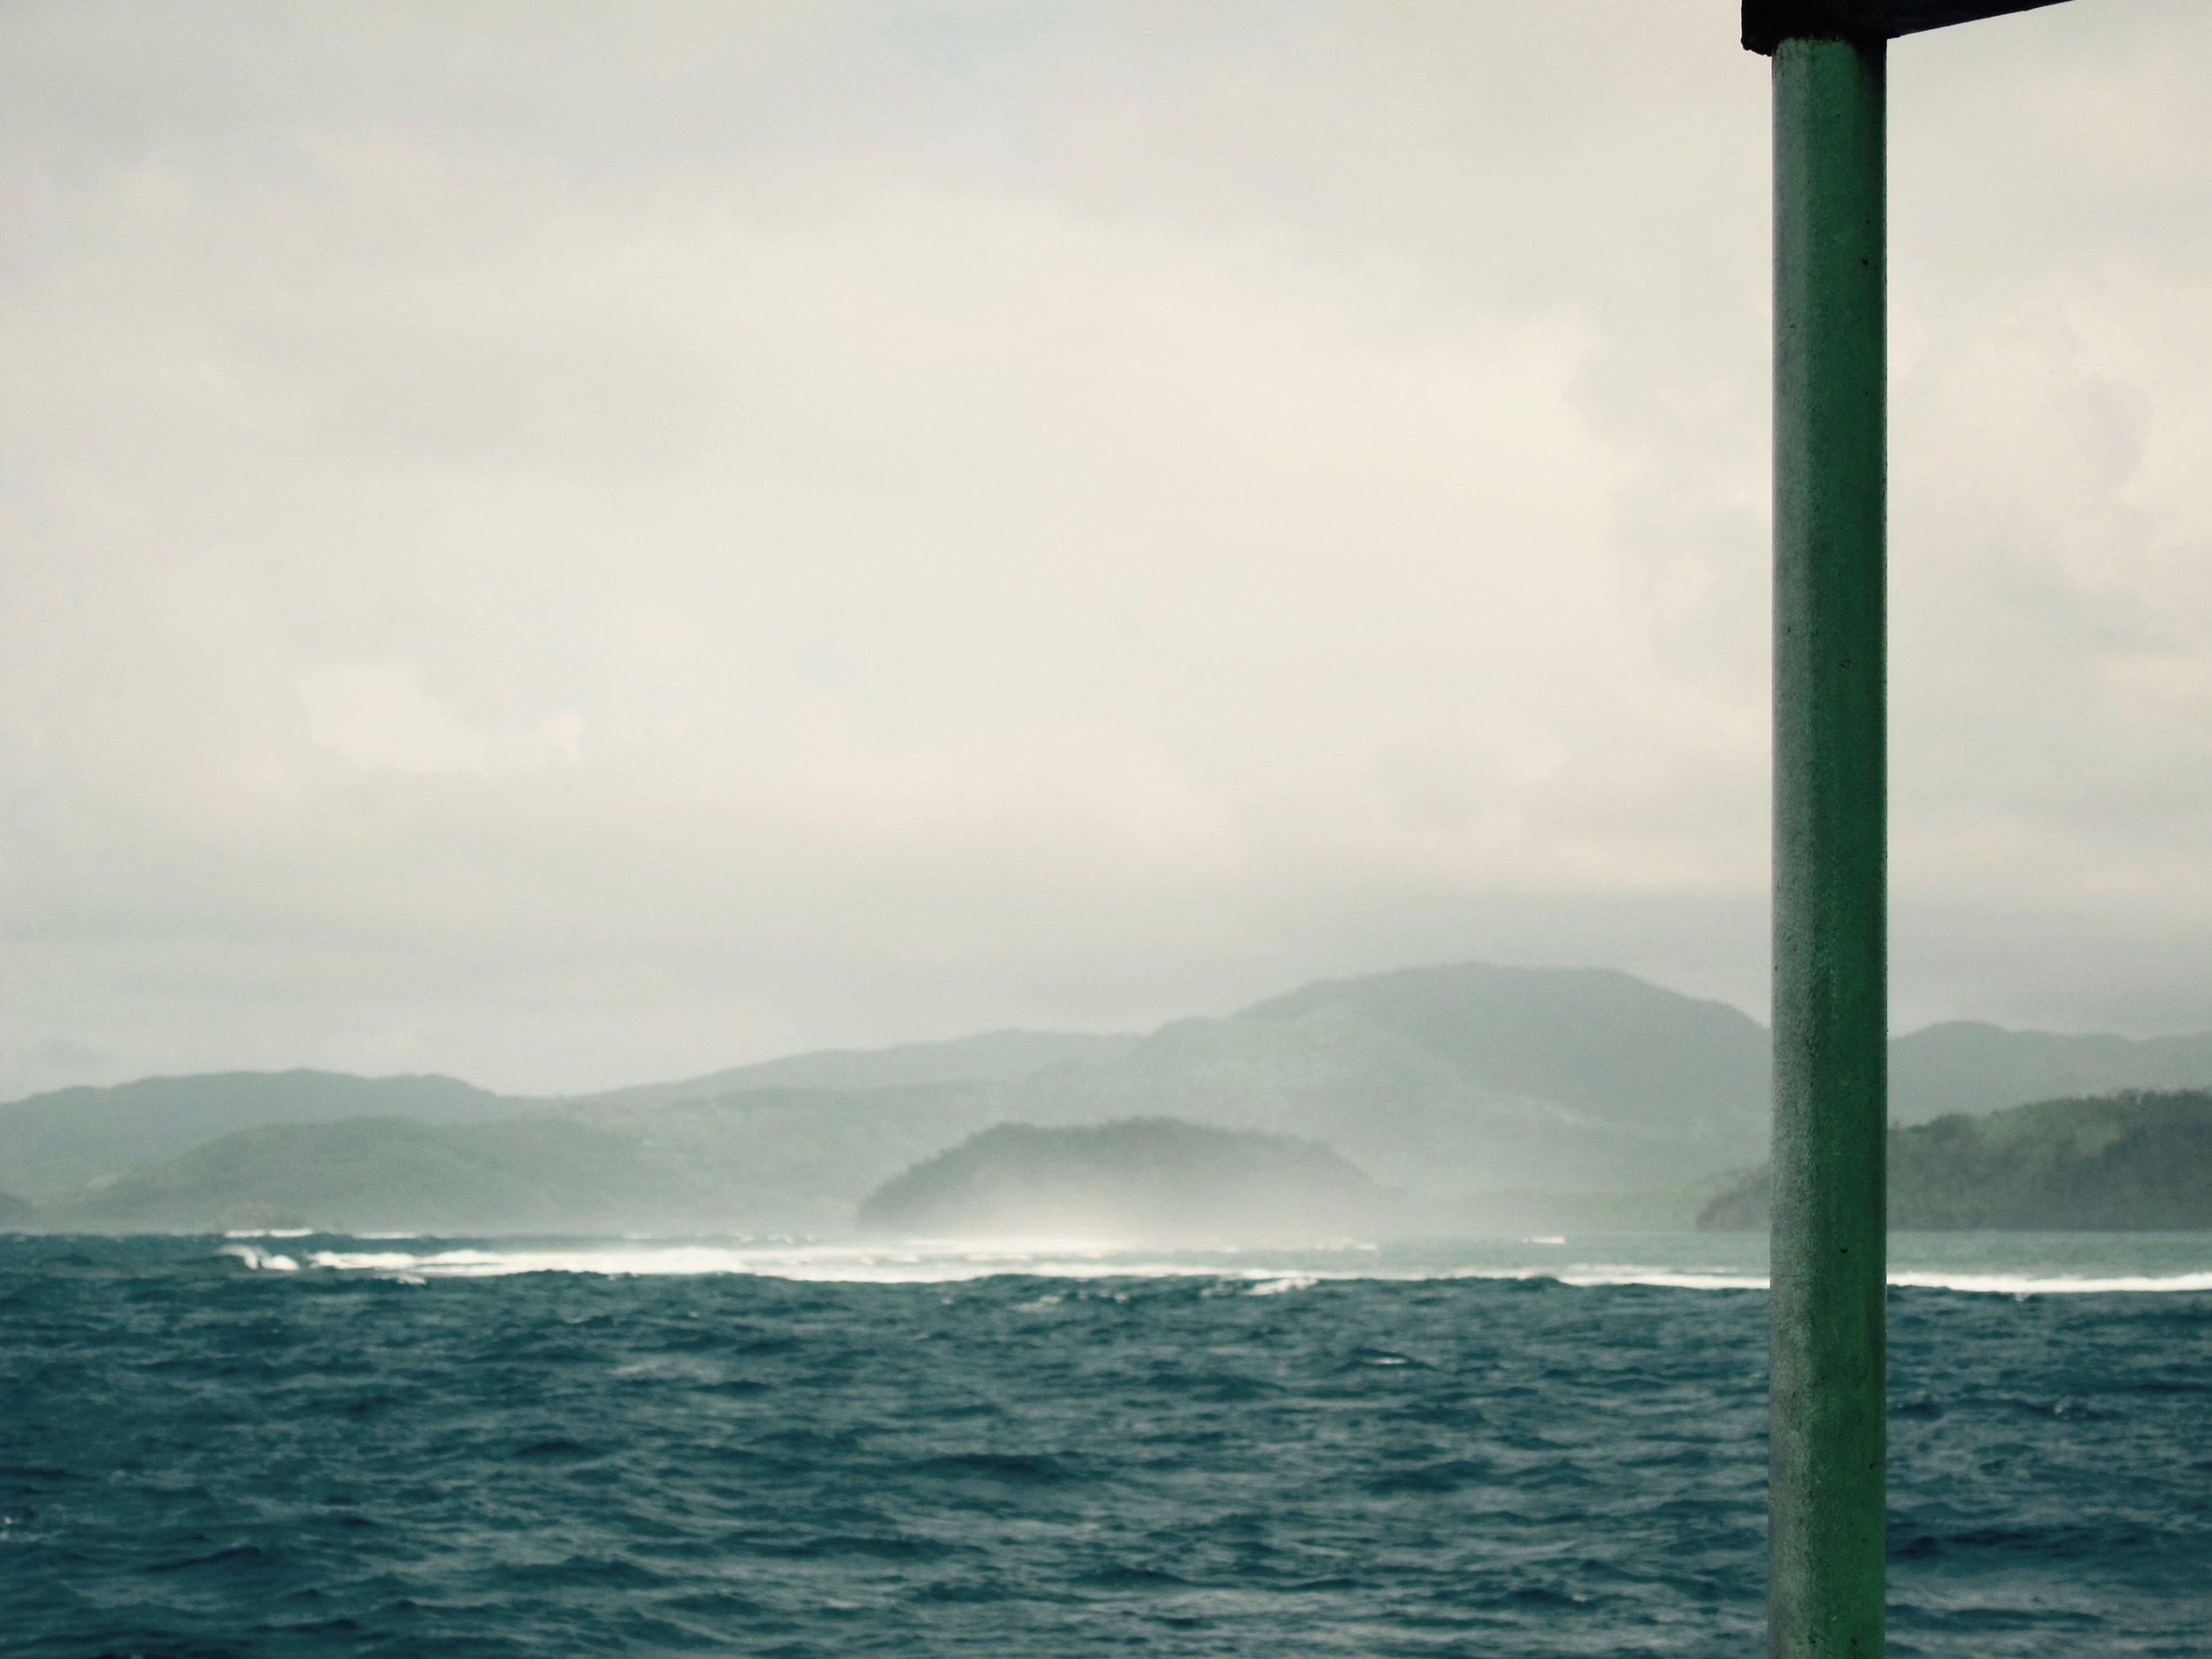 99  Looking back at Kadavu across the Great Astrolabe, from the ferry.jpg